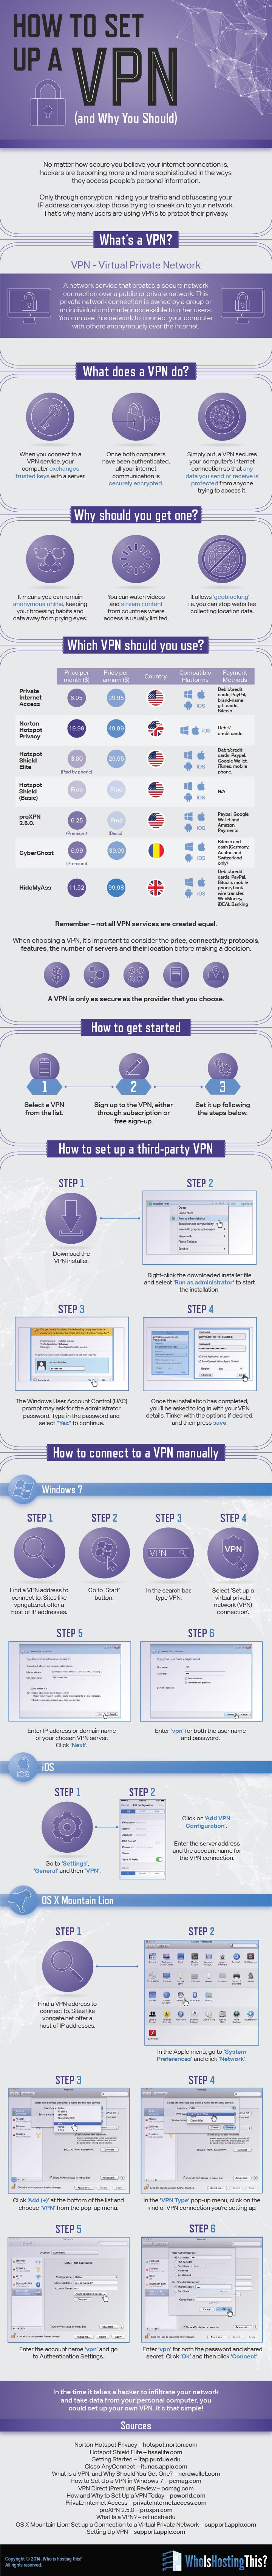 Infographic: How To Set Up a VPN (and Why You Should)